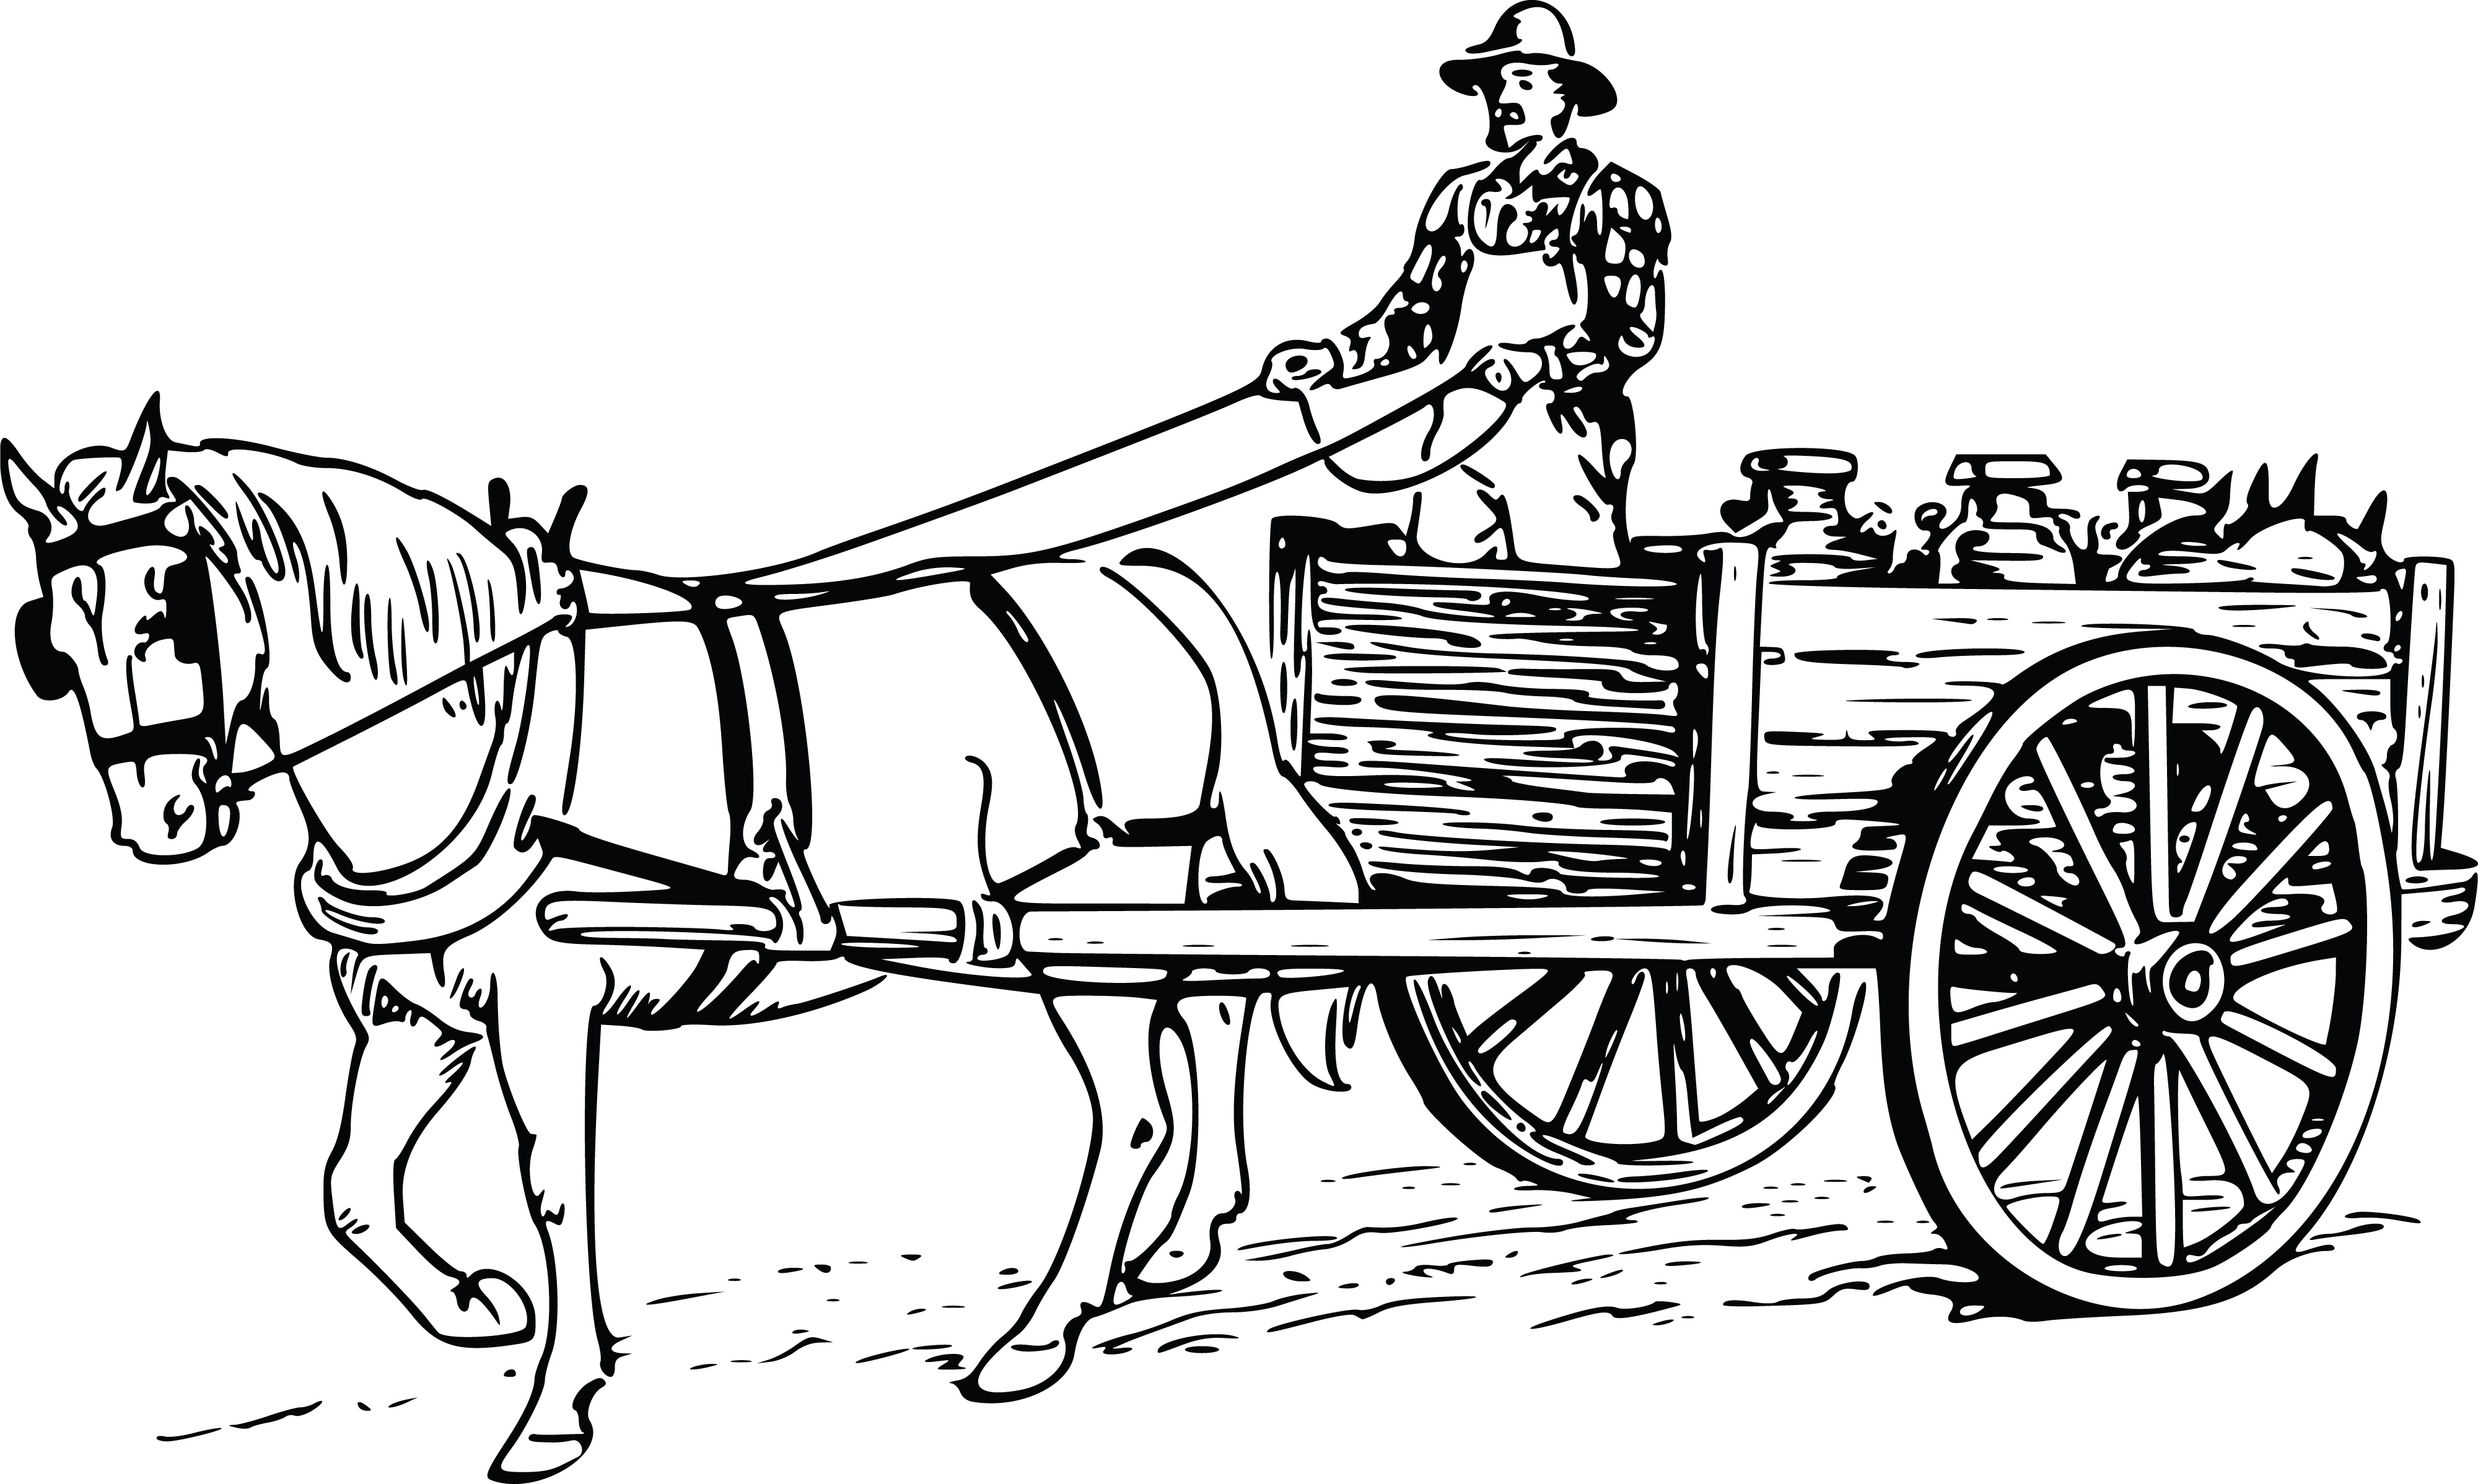 Clipart of a farmer driving a horse drawn cart free clipart of a farmer driving a horse drawn cart ccuart Choice Image